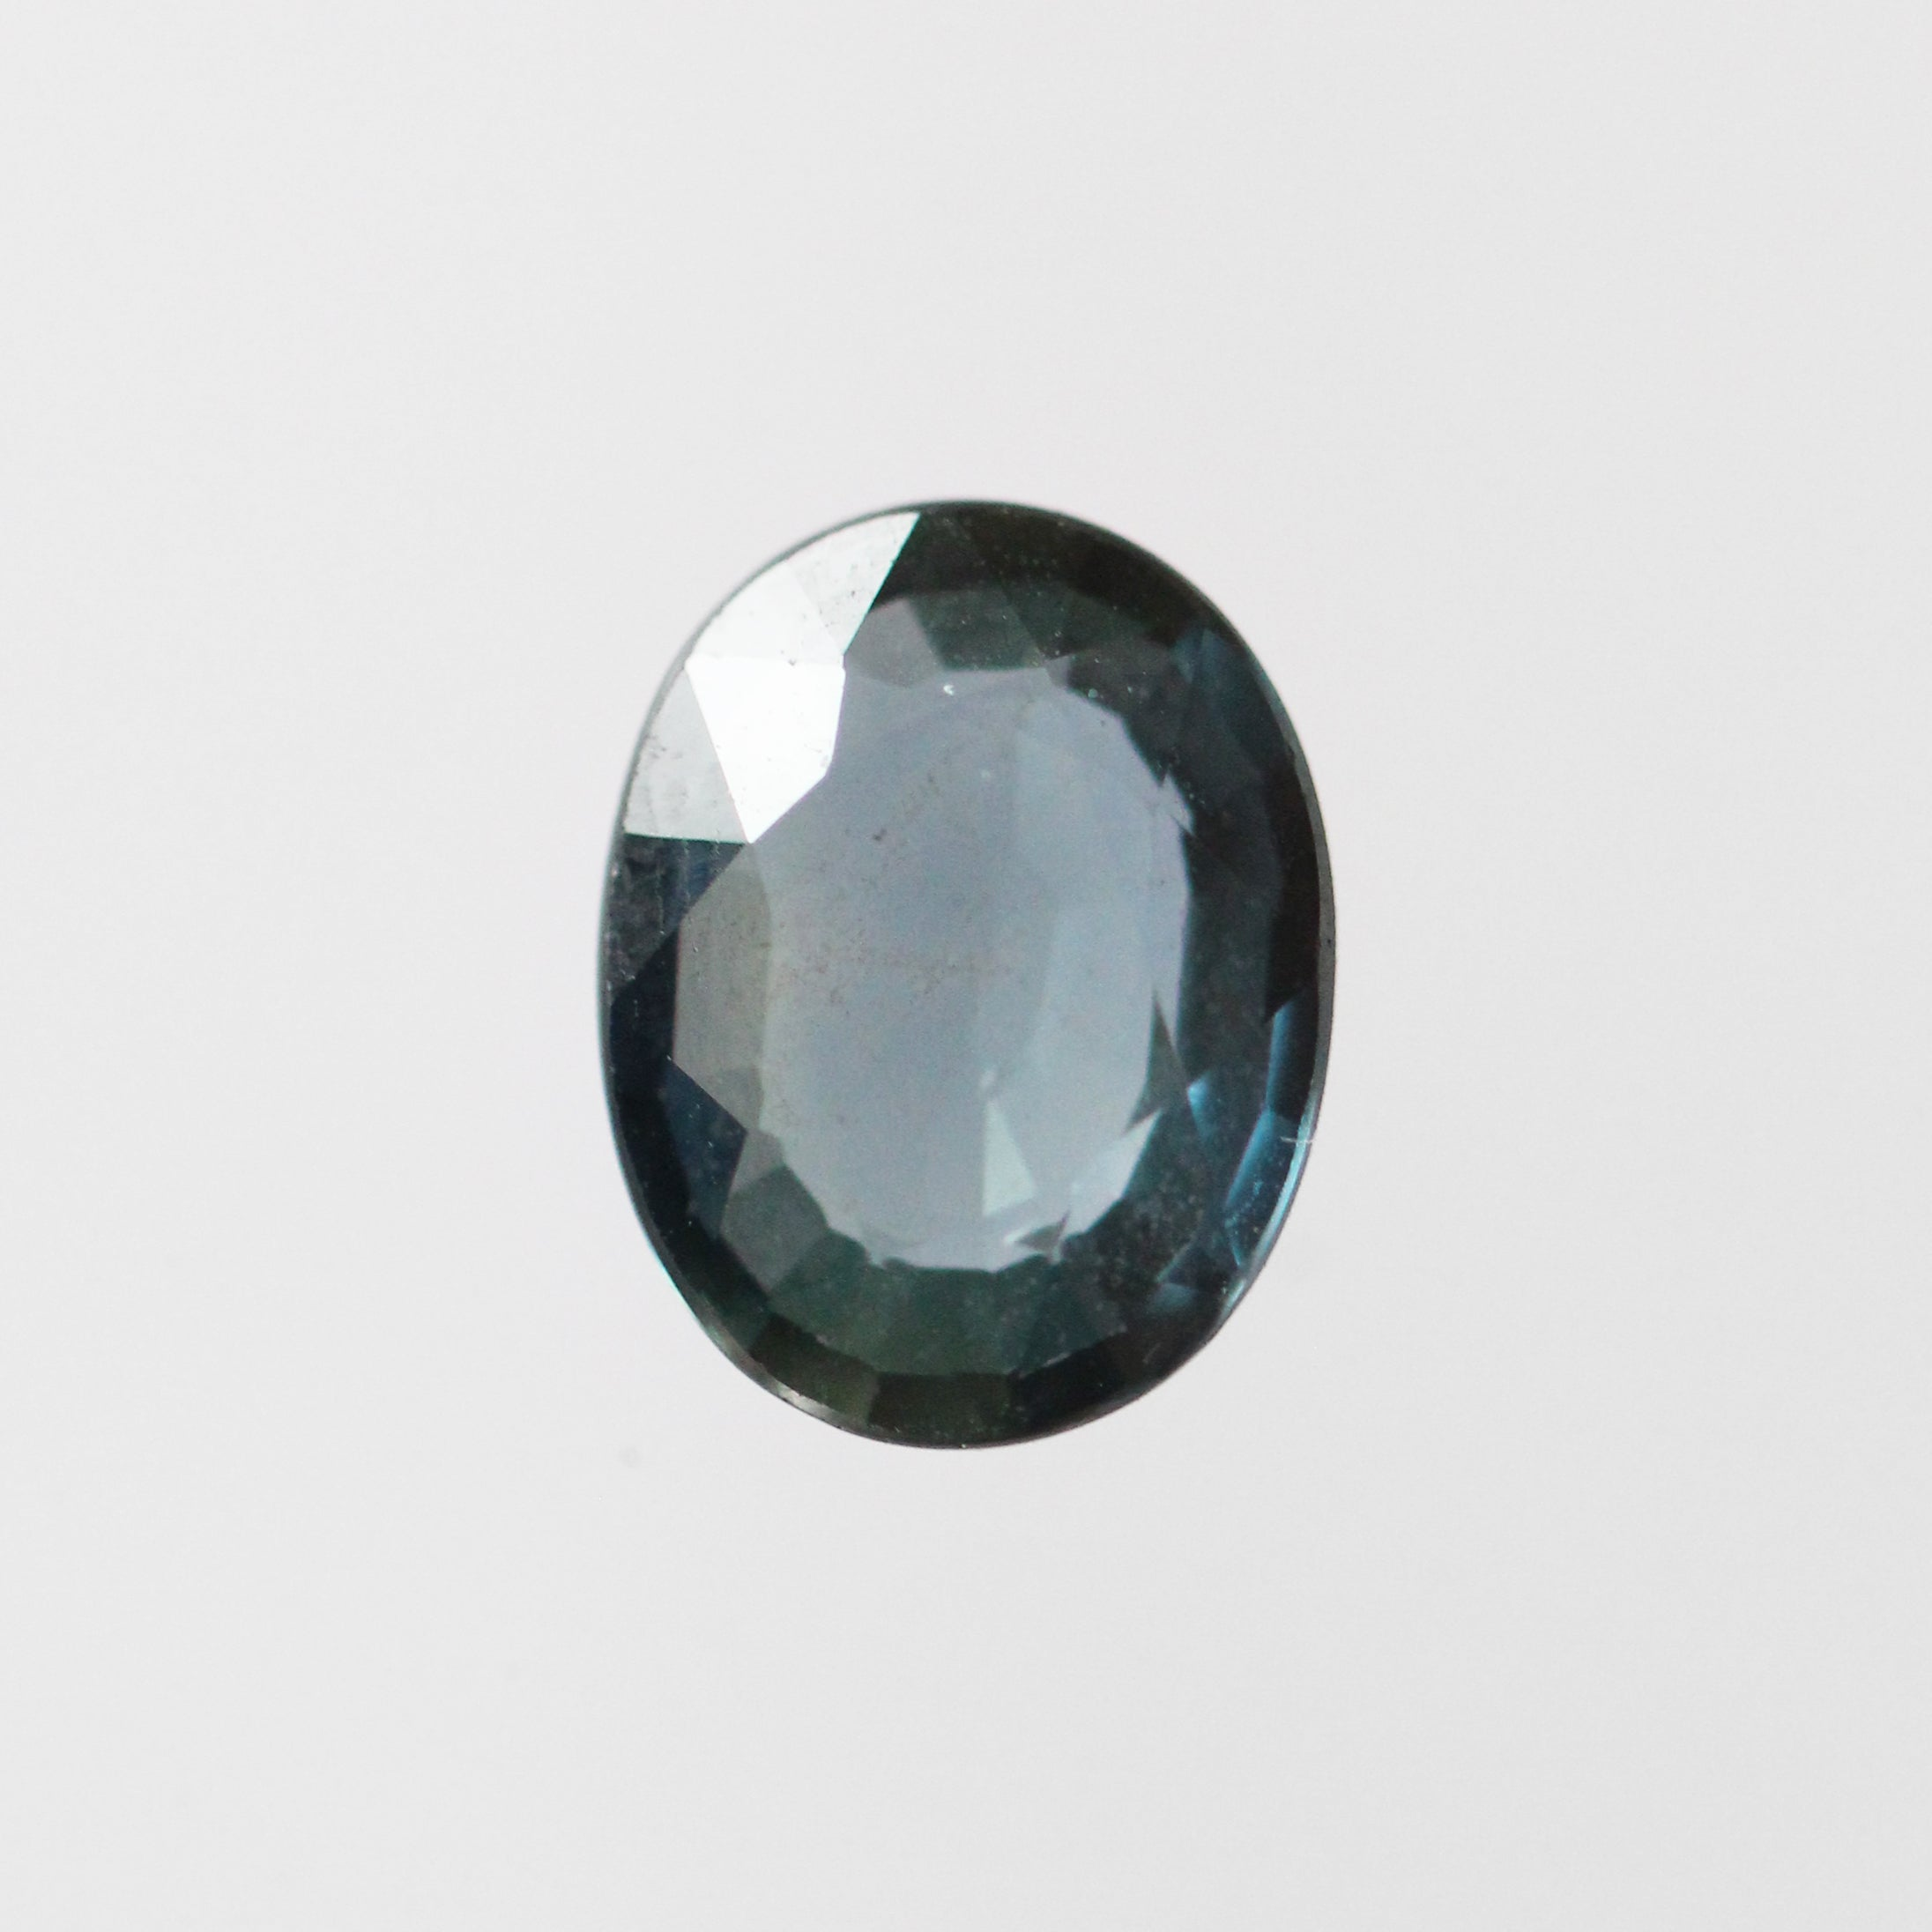 1.44 Carat Oval Sapphire - Inventory Code OBSA144 - Celestial Diamonds ® by Midwinter Co.